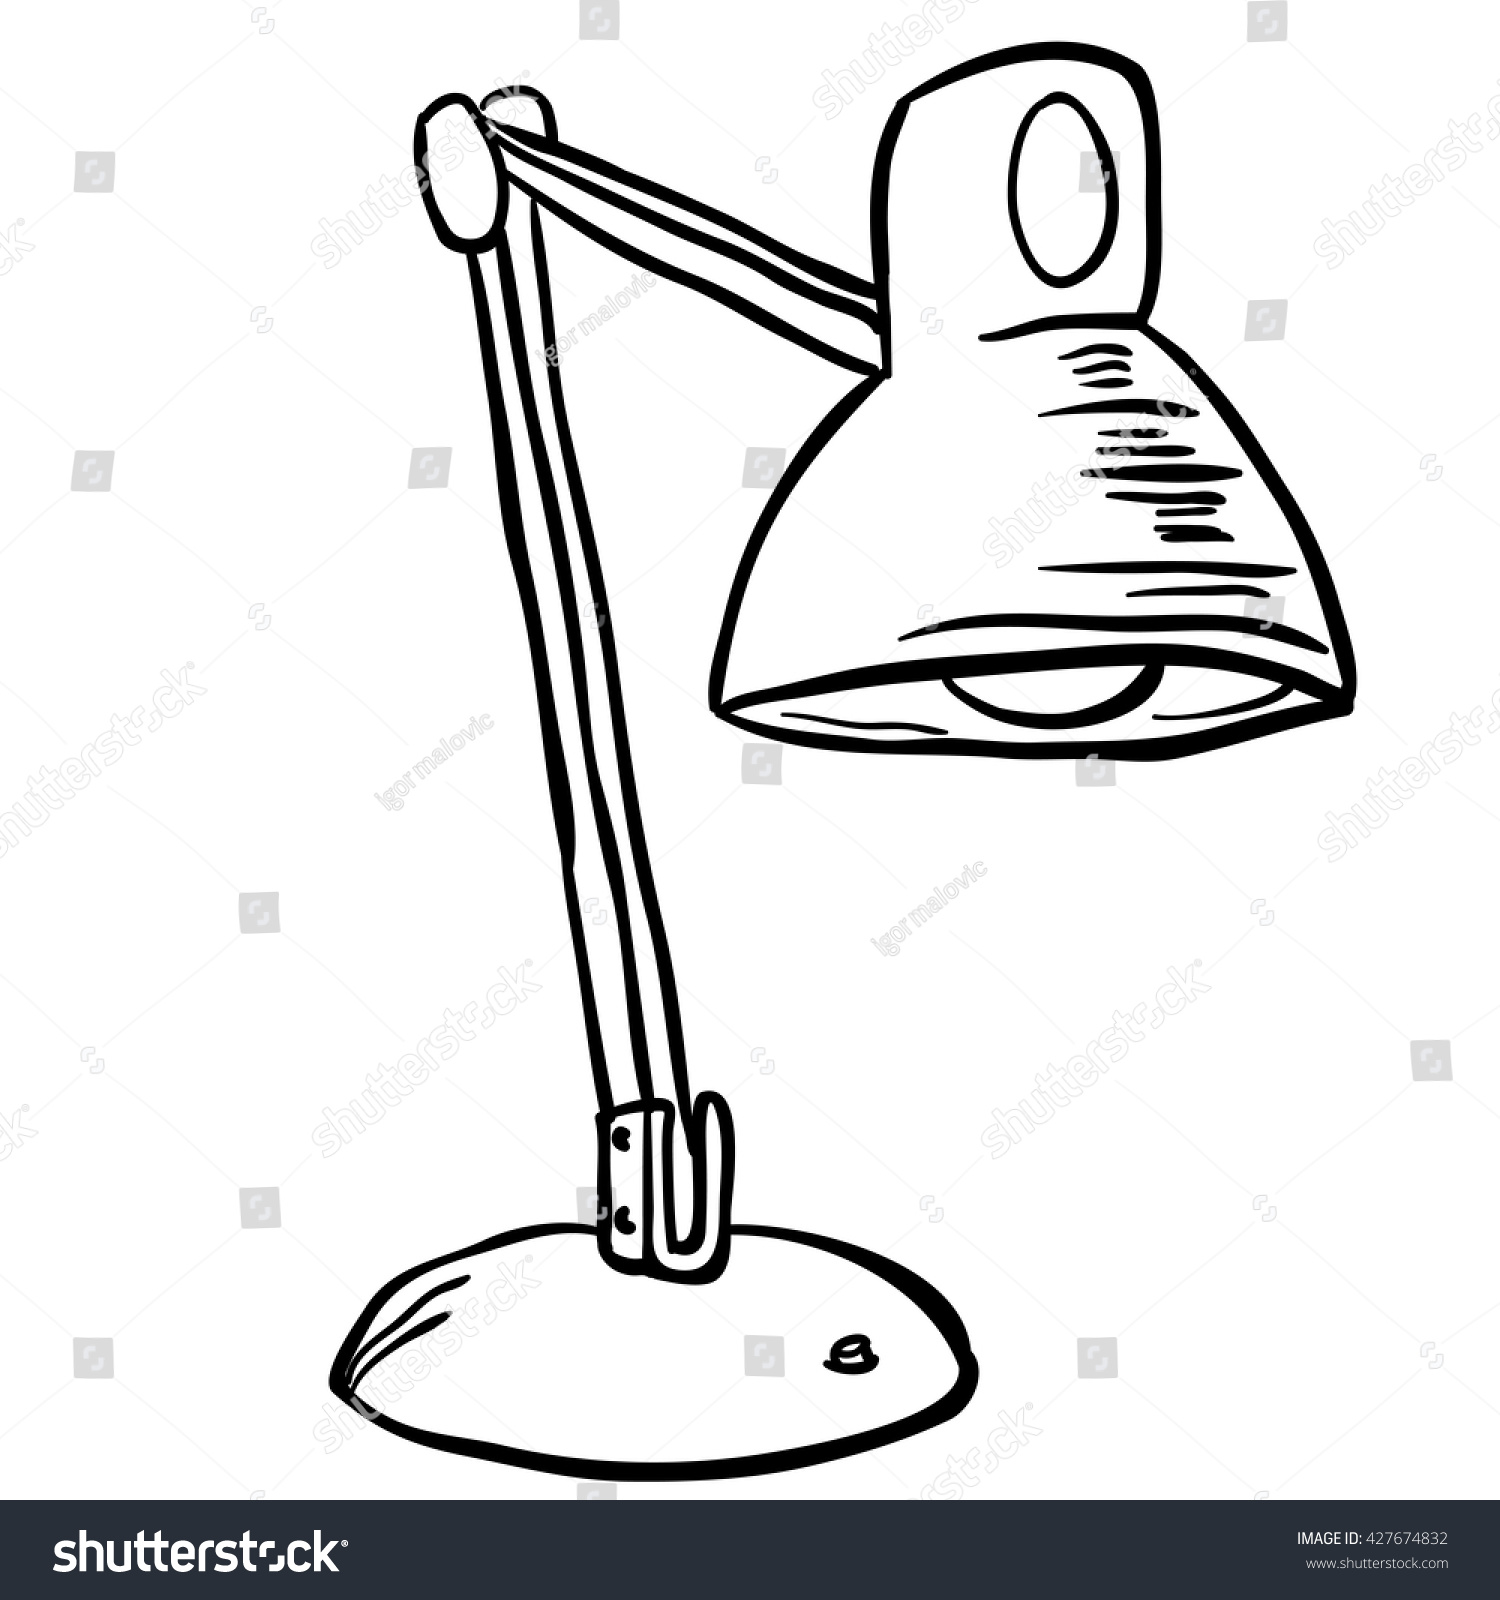 Black White Lamp Cartoon Stock Vector 427674832 - Shutterstock for Clipart Lamp Black And White  14lpgtk